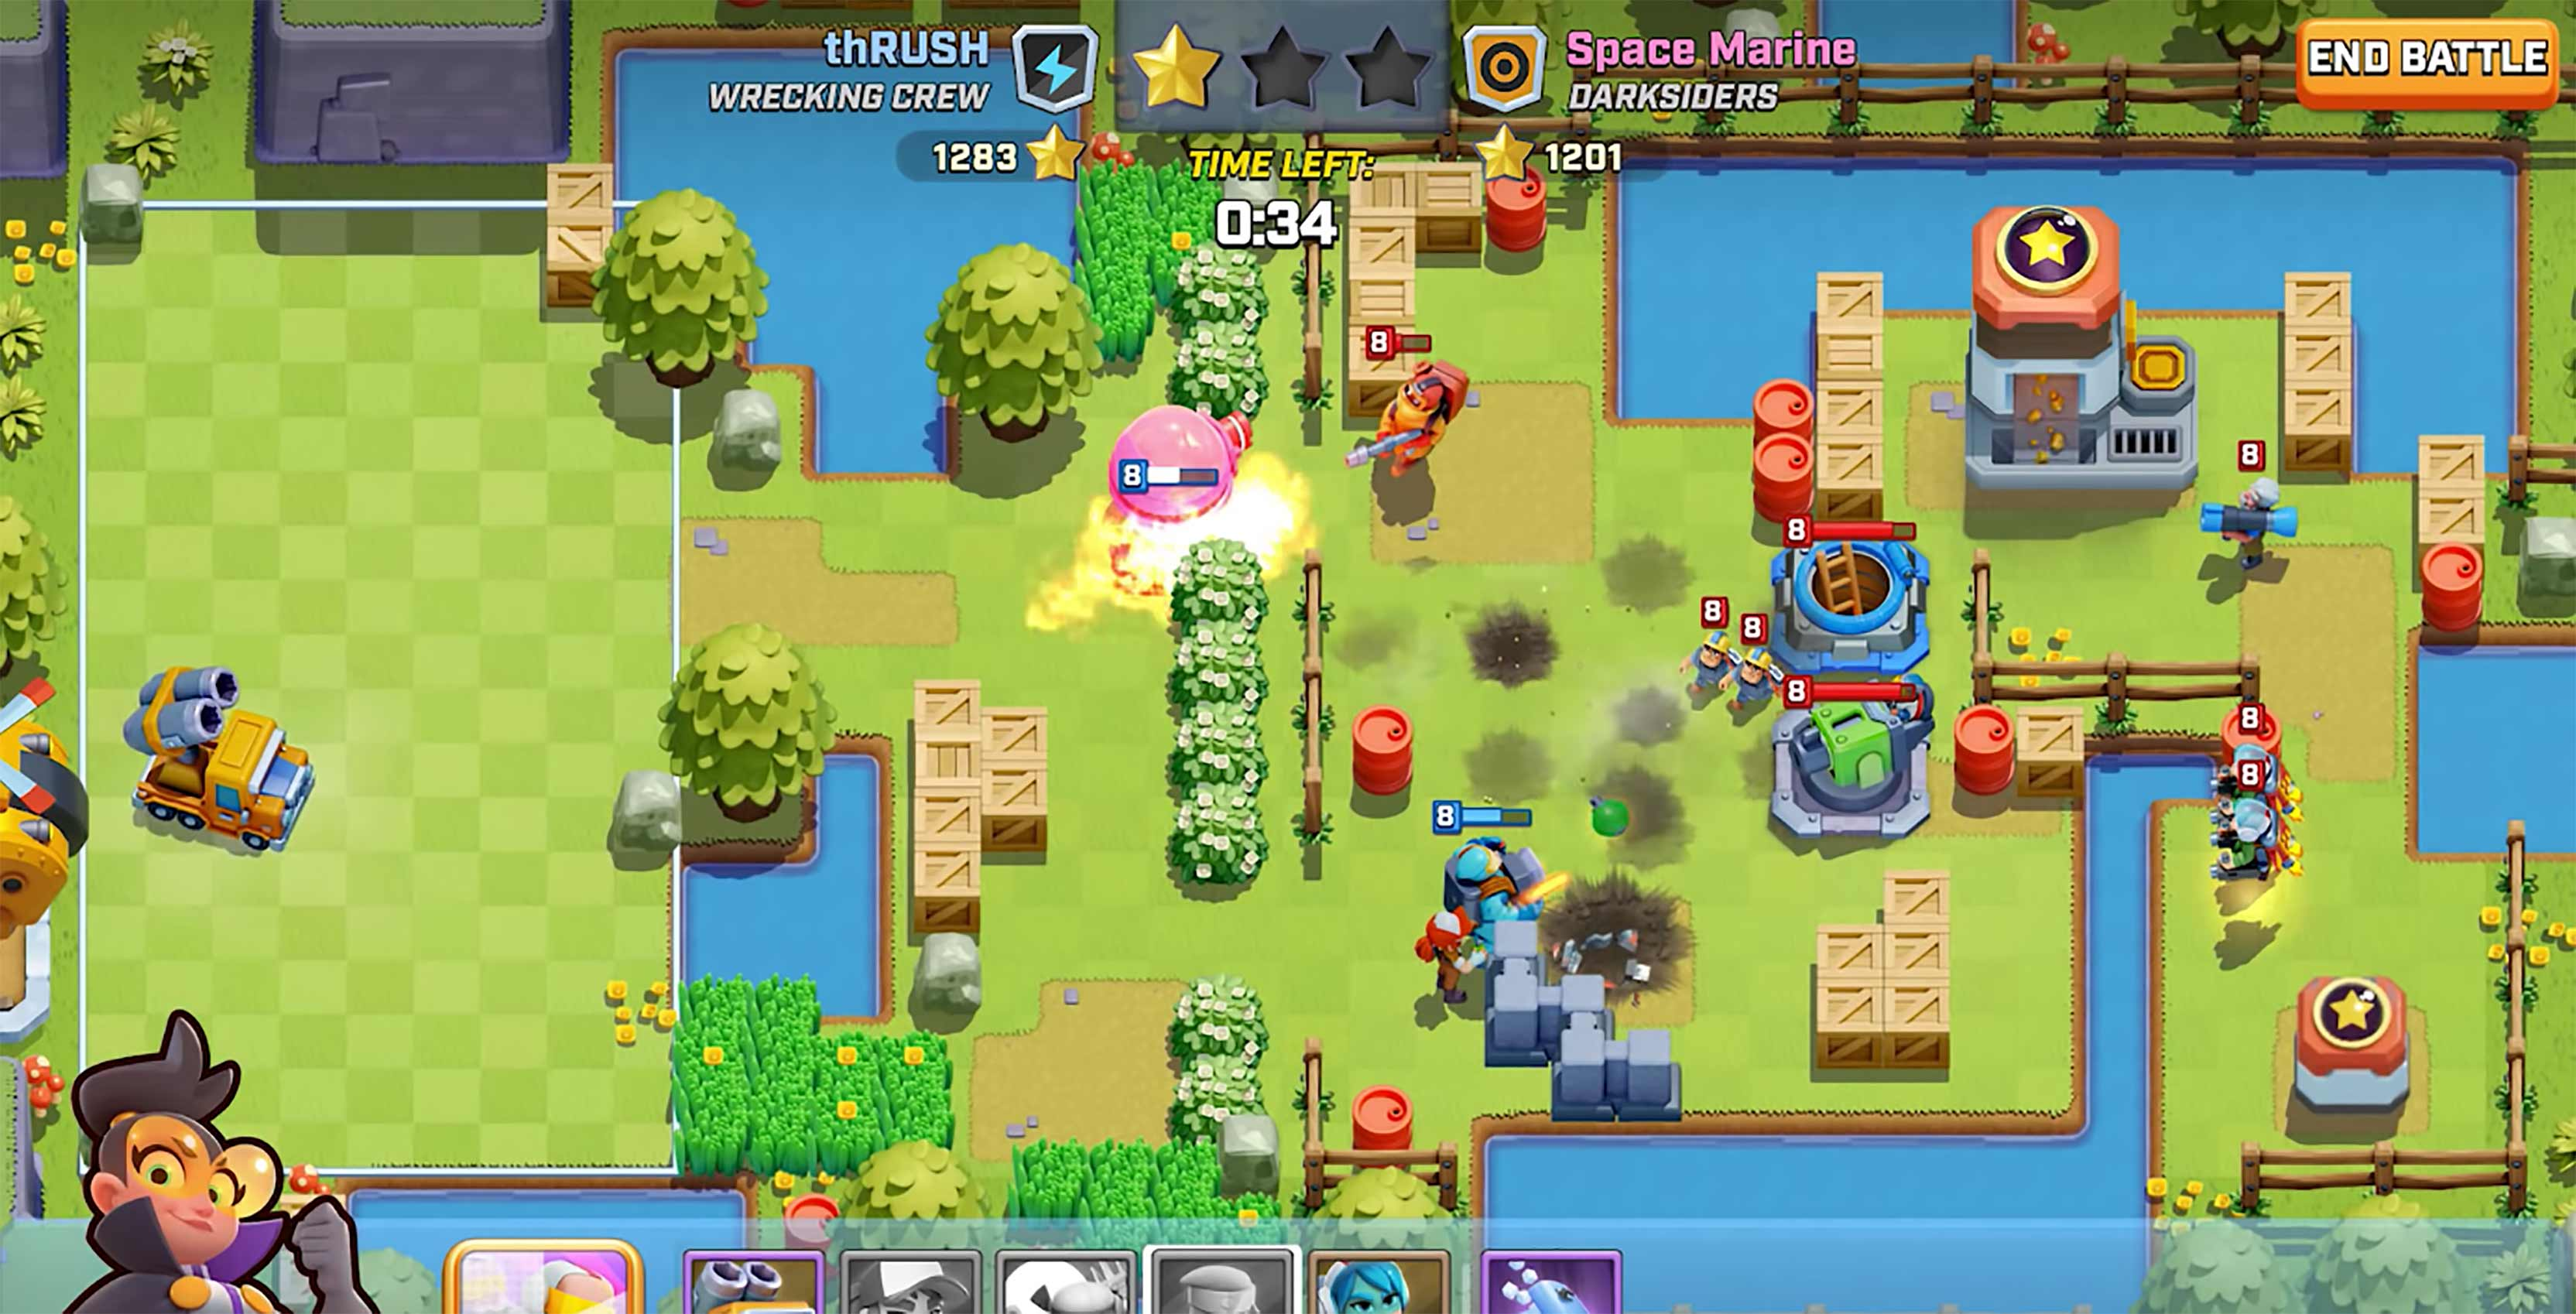 Clash of Clans developer's new mobile game now available in beta in Canada